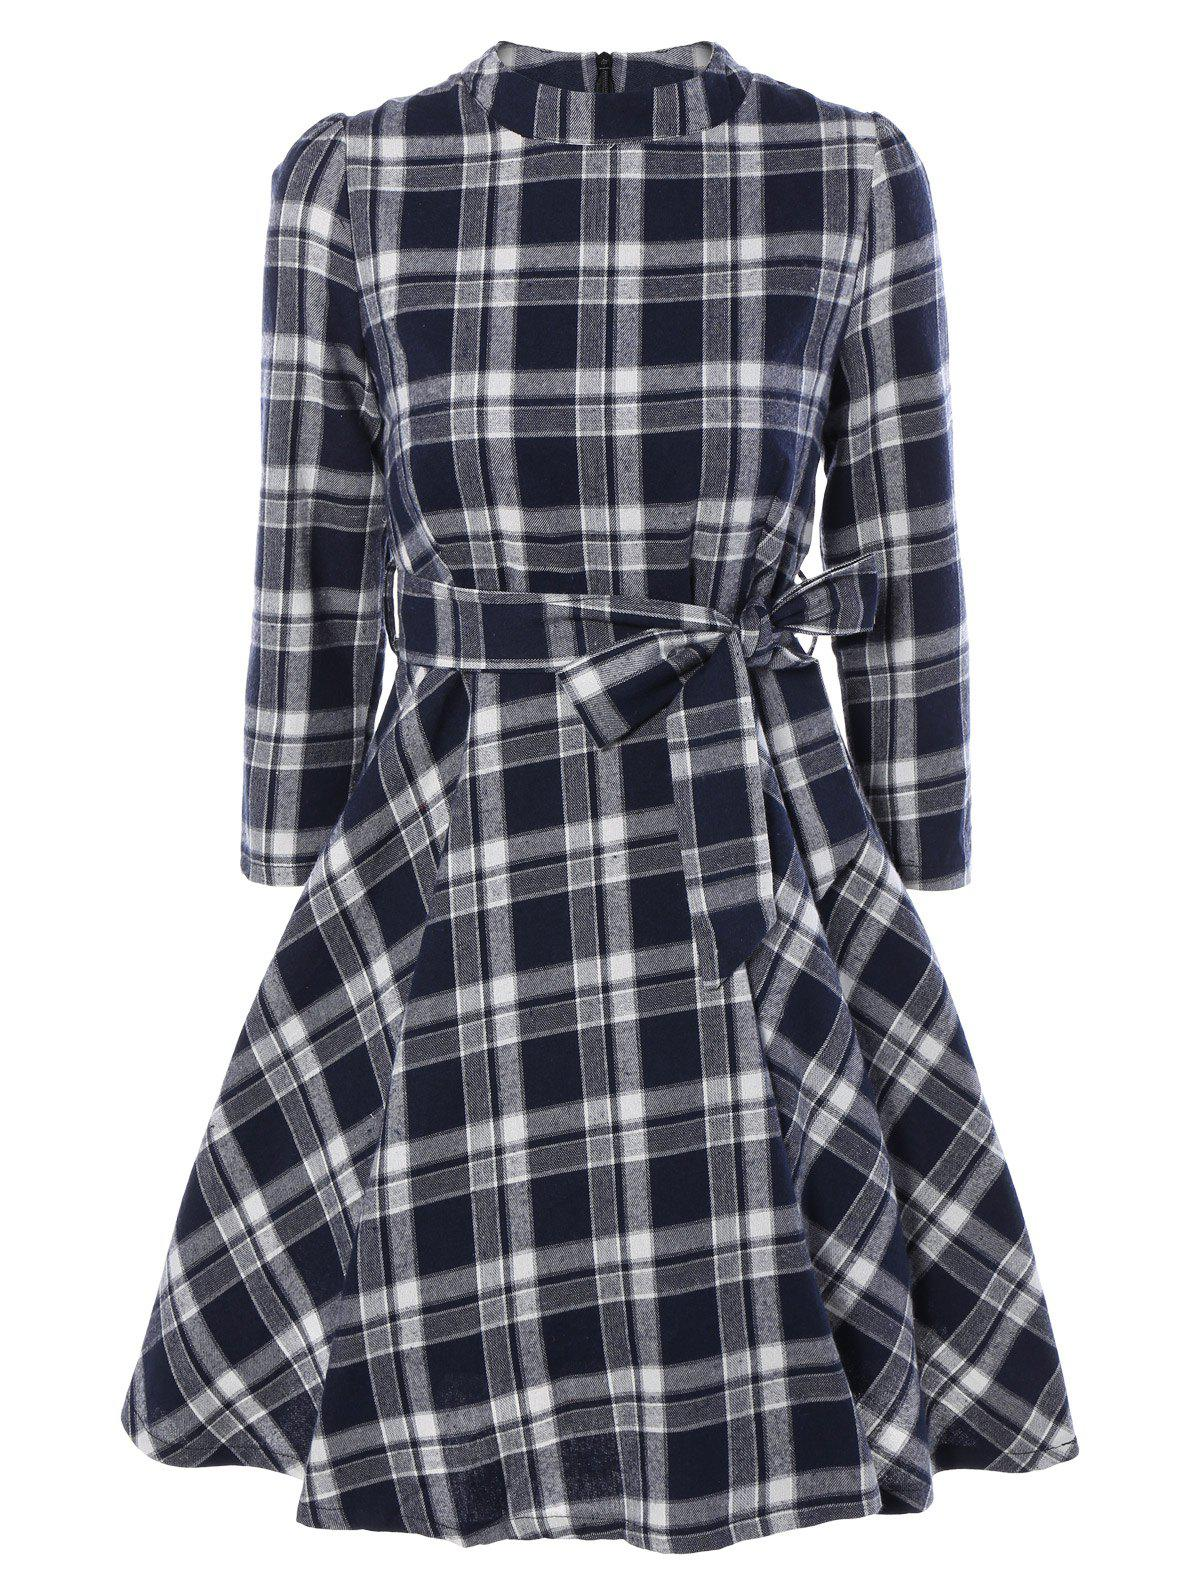 Pied de col Tie-Waist Plaid Dress - Bleu Cadette XL